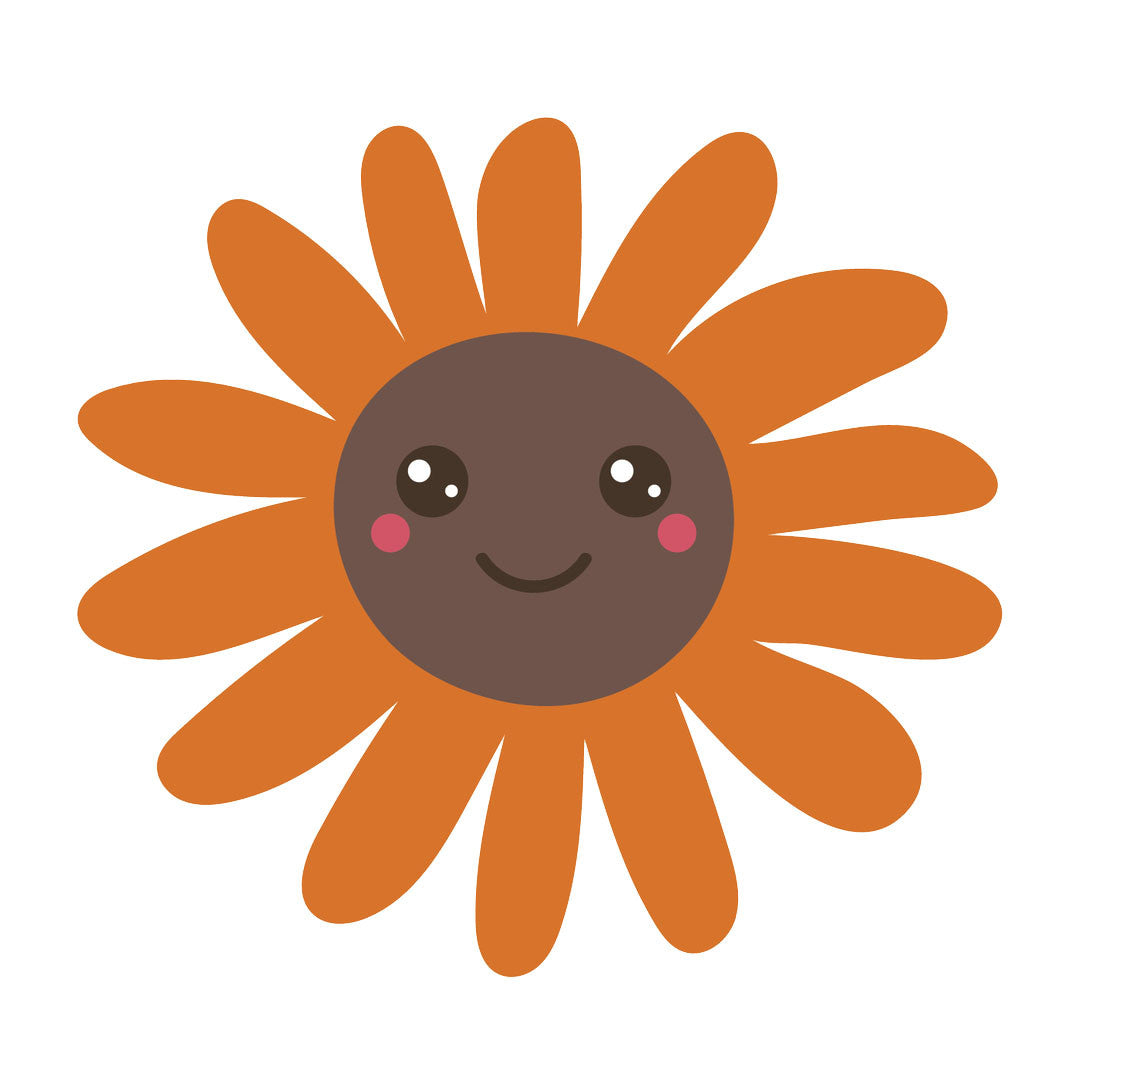 Happy Flower Emoji - Orange Sunflower Vinyl Decal Sticker